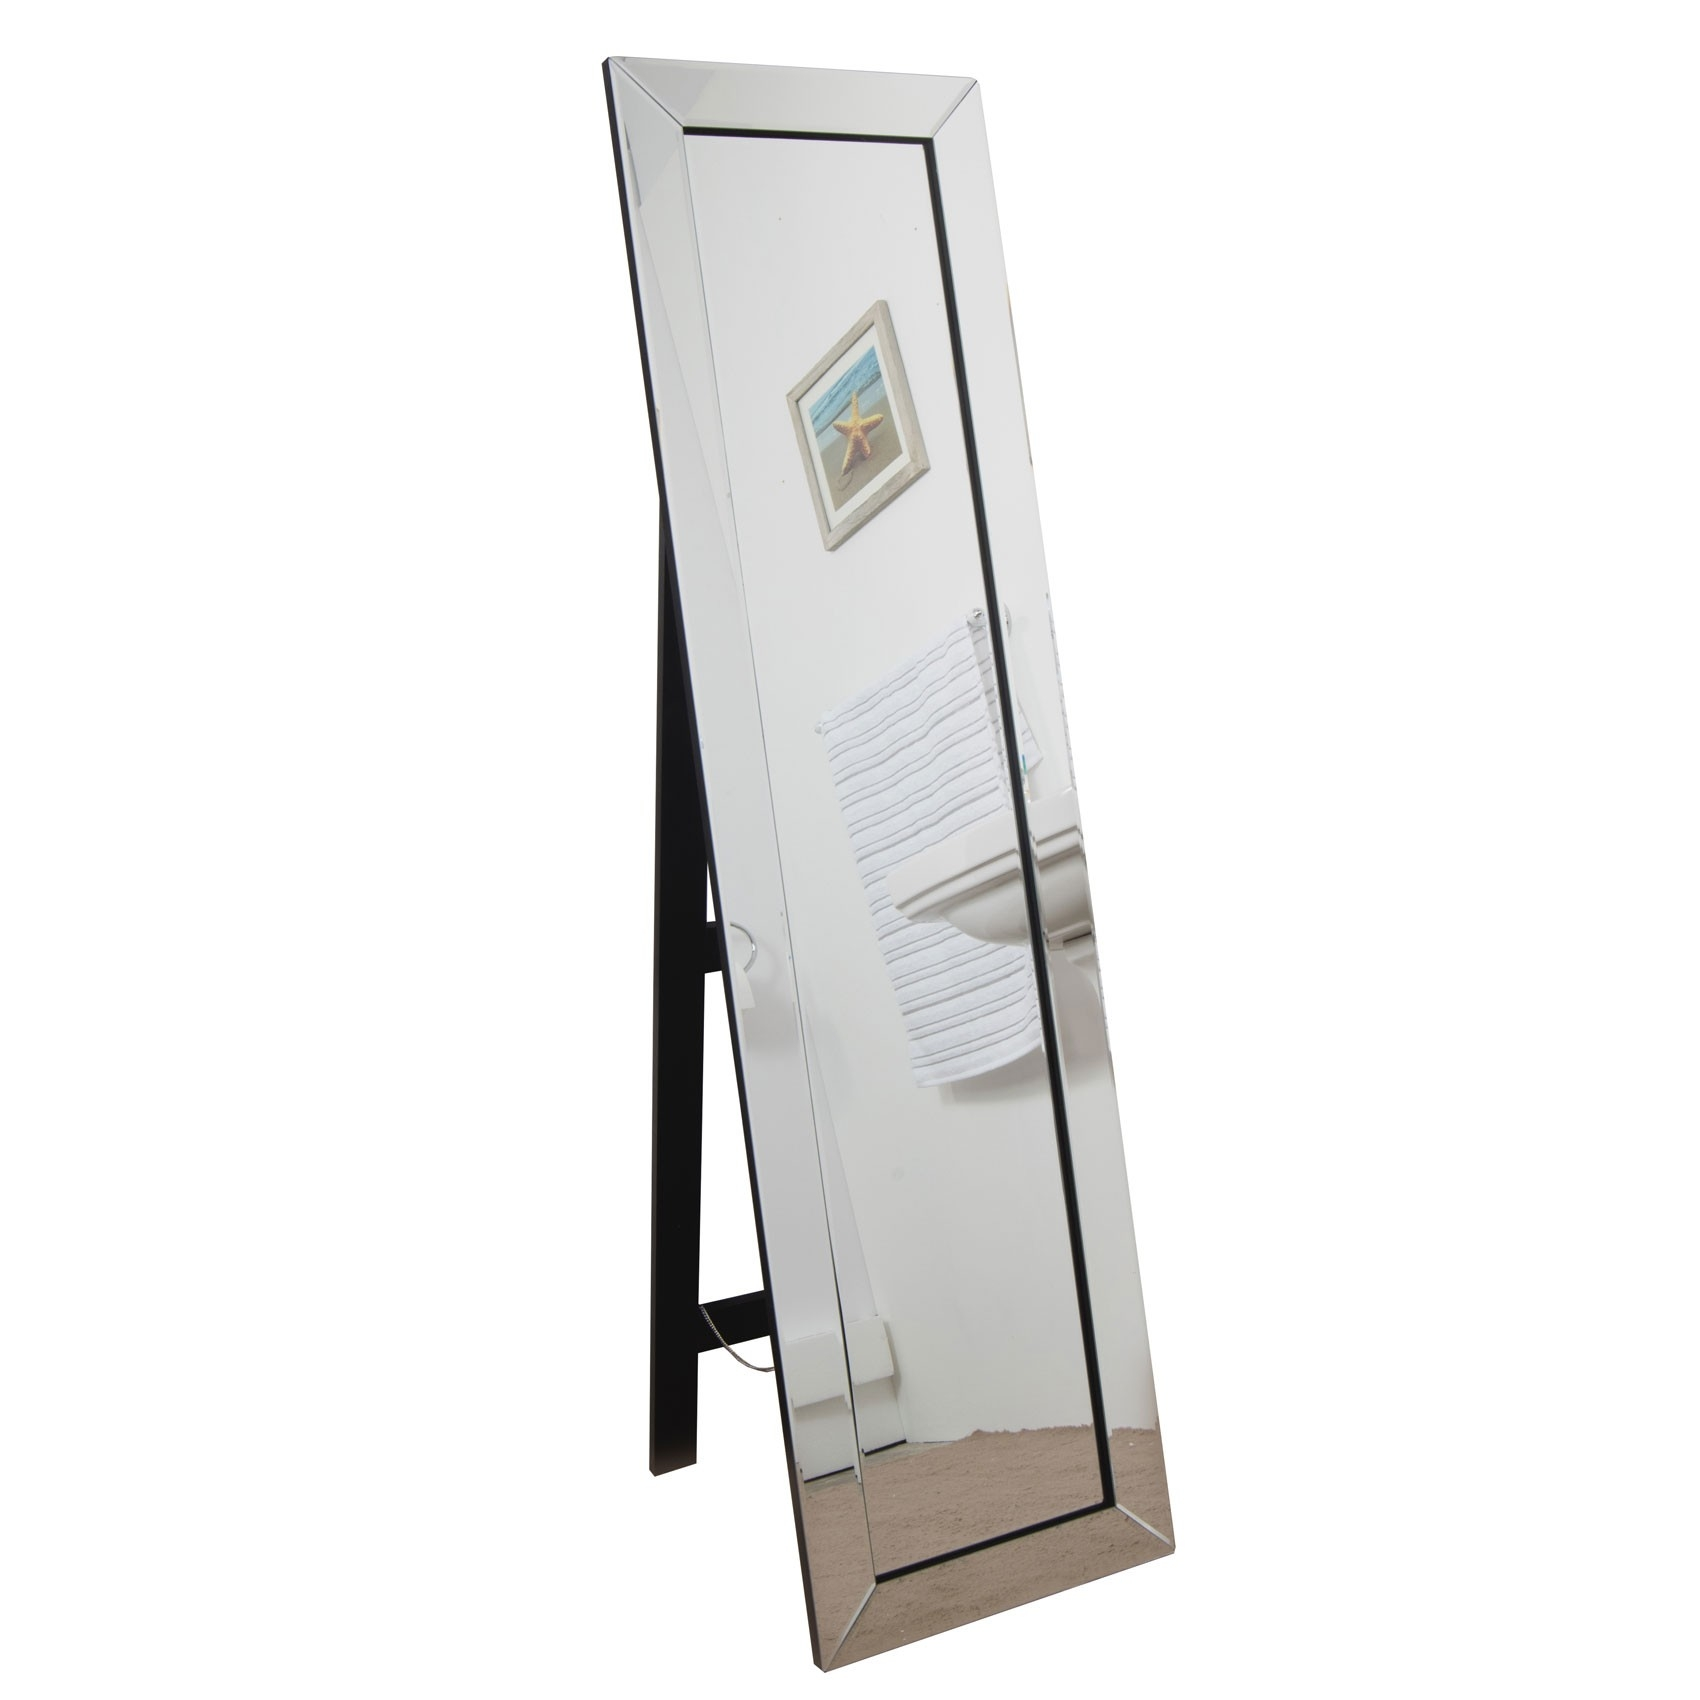 Bathroom Mirrors Category Pertaining To Dress Mirrors Free Standing (Image 5 of 15)